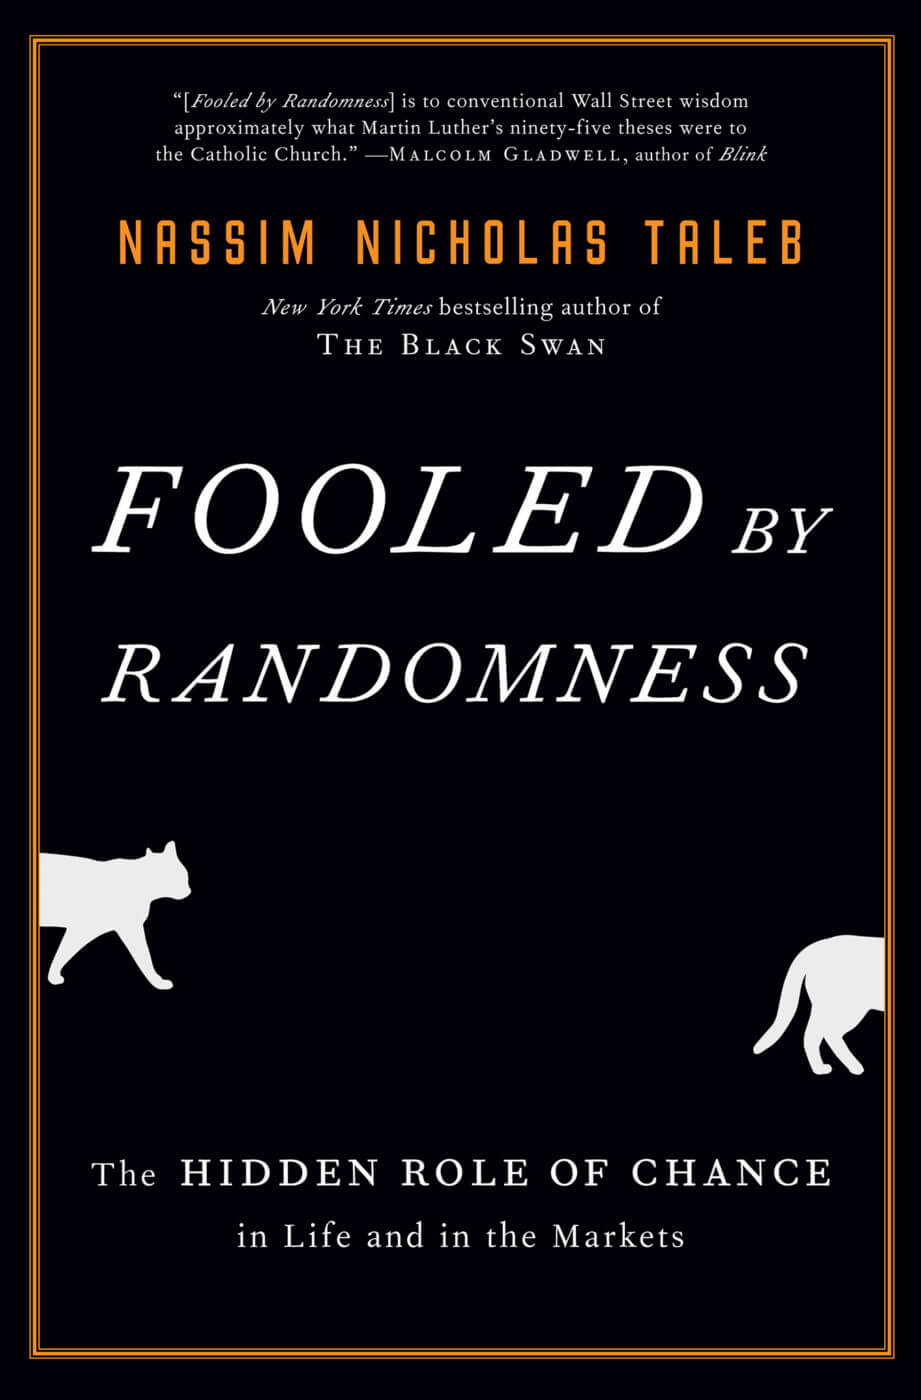 Fooled by Randomness by Nassim Taleb